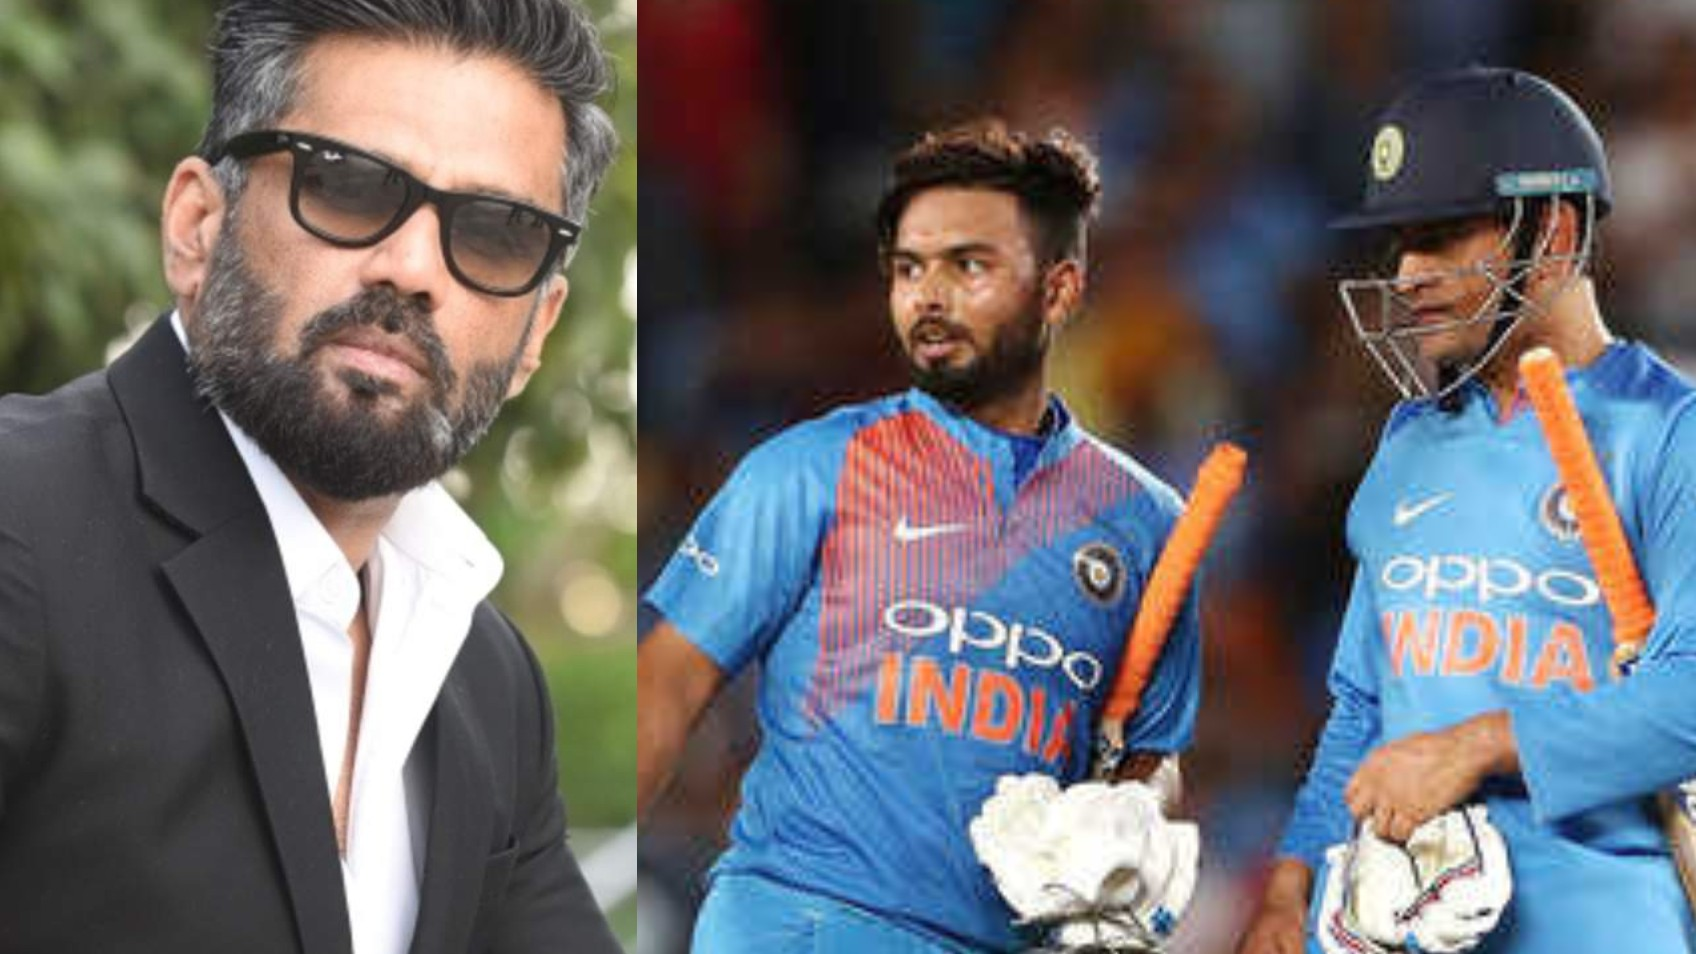 WATCH- MS Dhoni or Rishabh Pant? Suniel Shetty chooses his Indian T20 World Cup squad